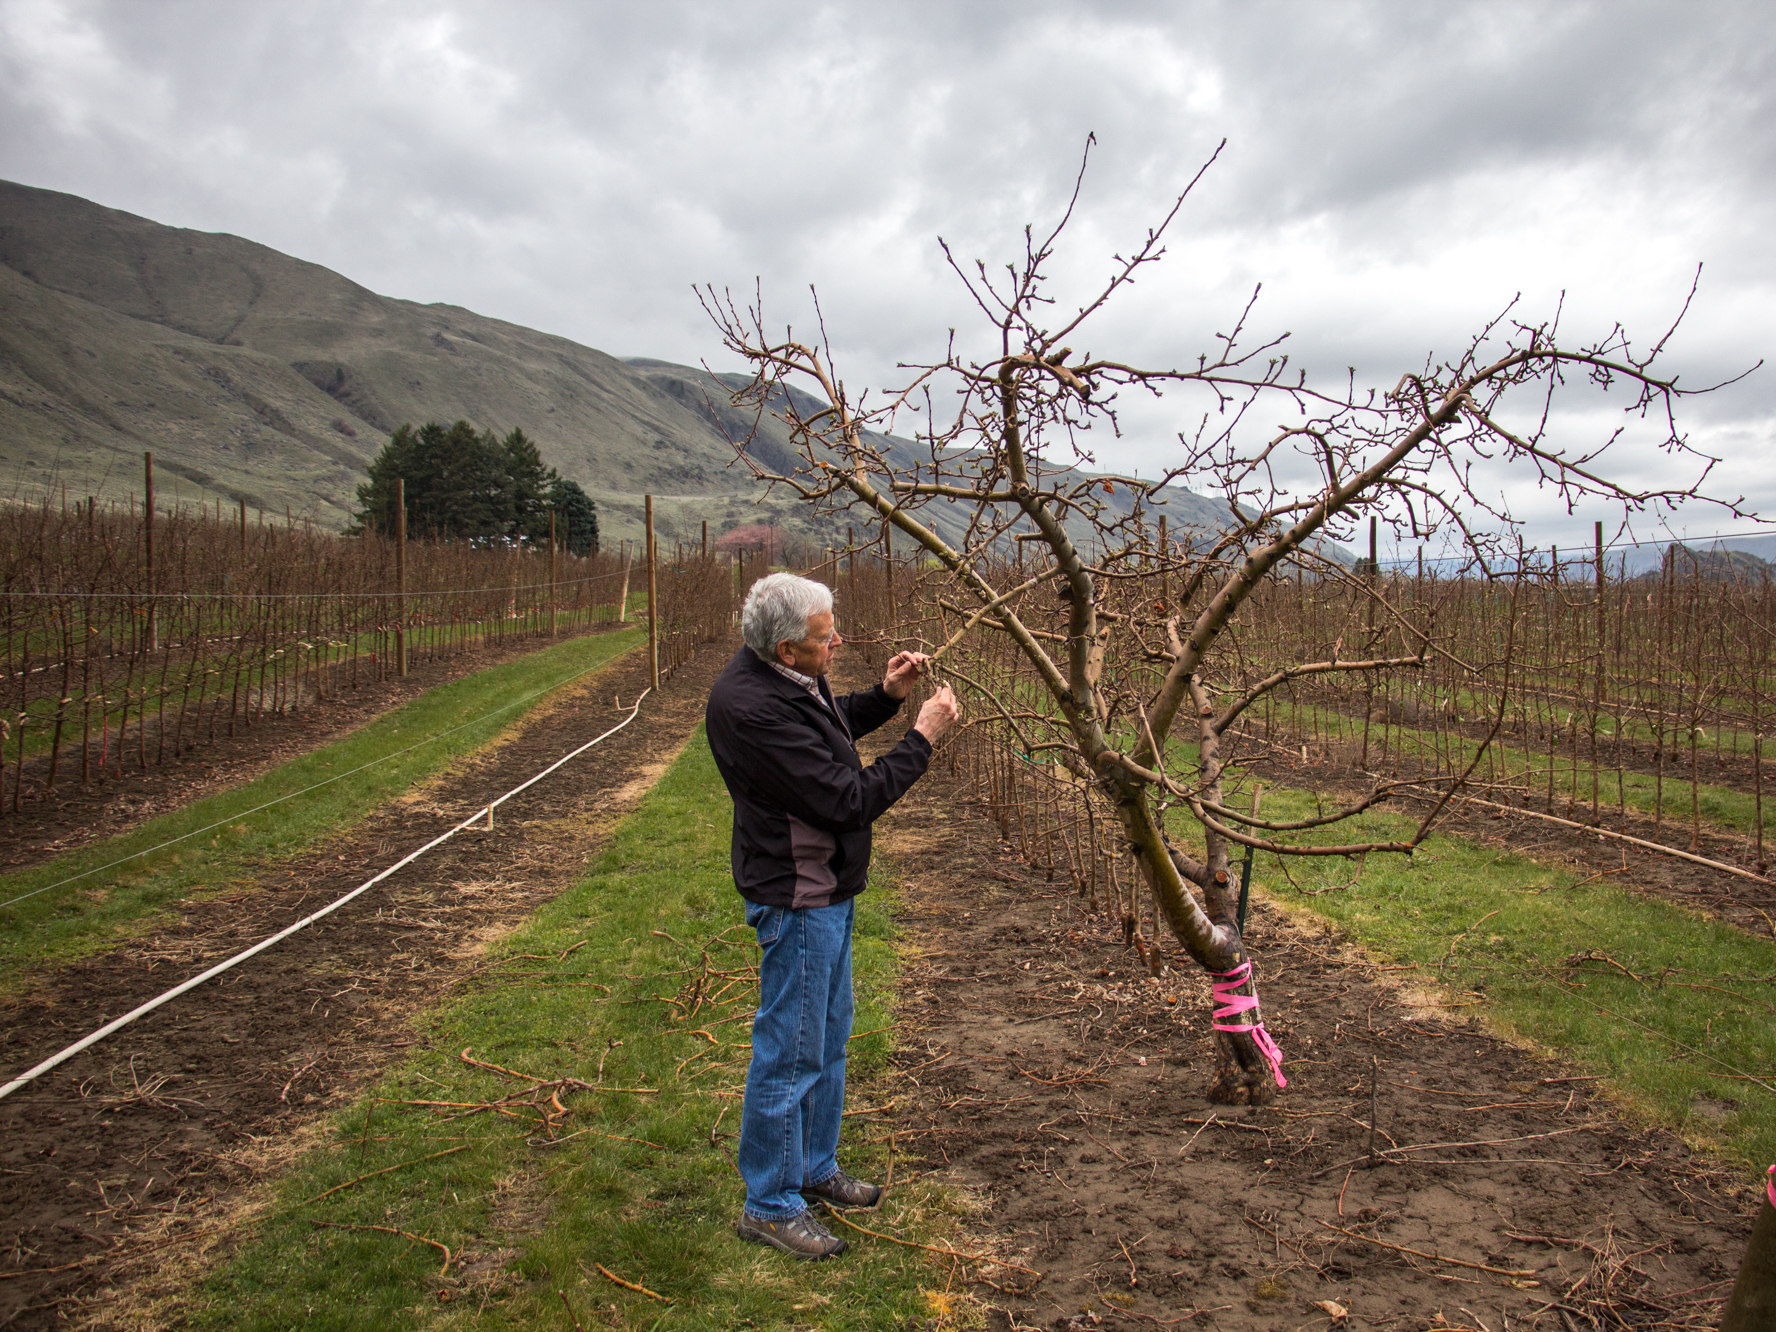 Patent holder Bruce Barritt stops by the mother of all Cosmic Crisp trees. Cosmic Crisp was the result of breeding project at Washington State University in the 1990s.     (Dan Charles/NPR)